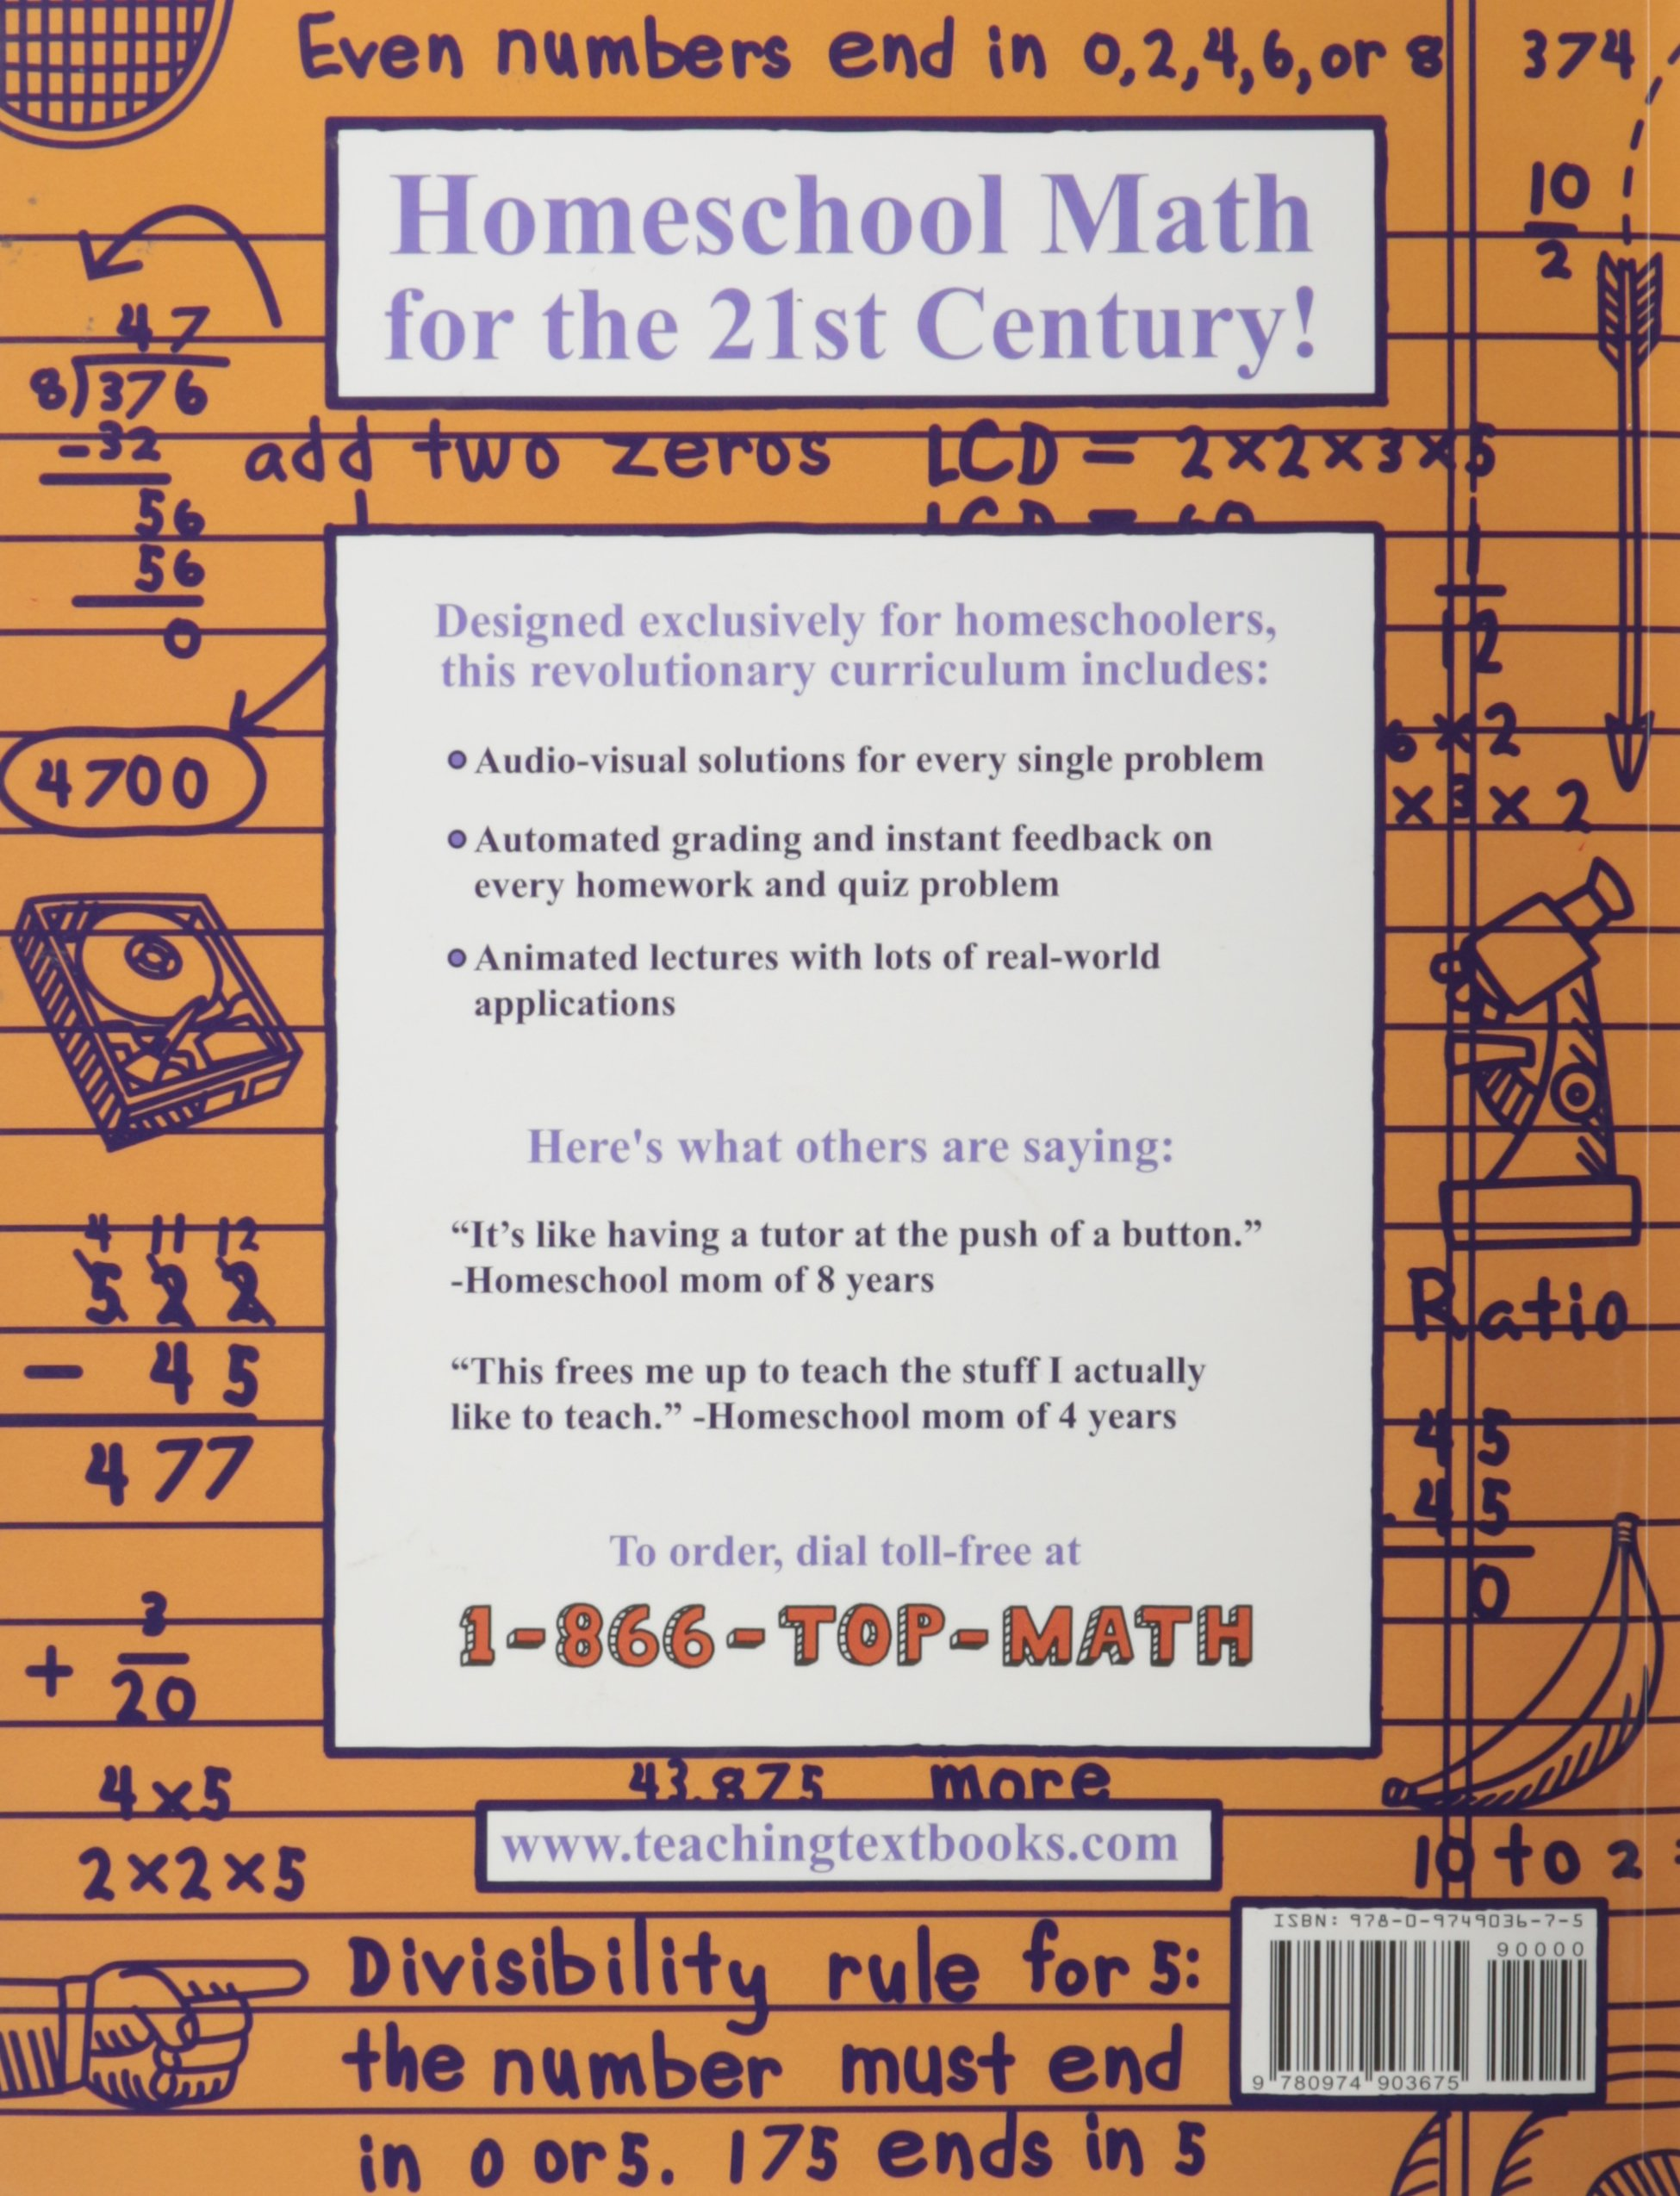 Teaching textbooks math 7 answer key greg sabouri shawn sabouri teaching textbooks math 7 answer key greg sabouri shawn sabouri 9780974903675 amazon books fandeluxe Images